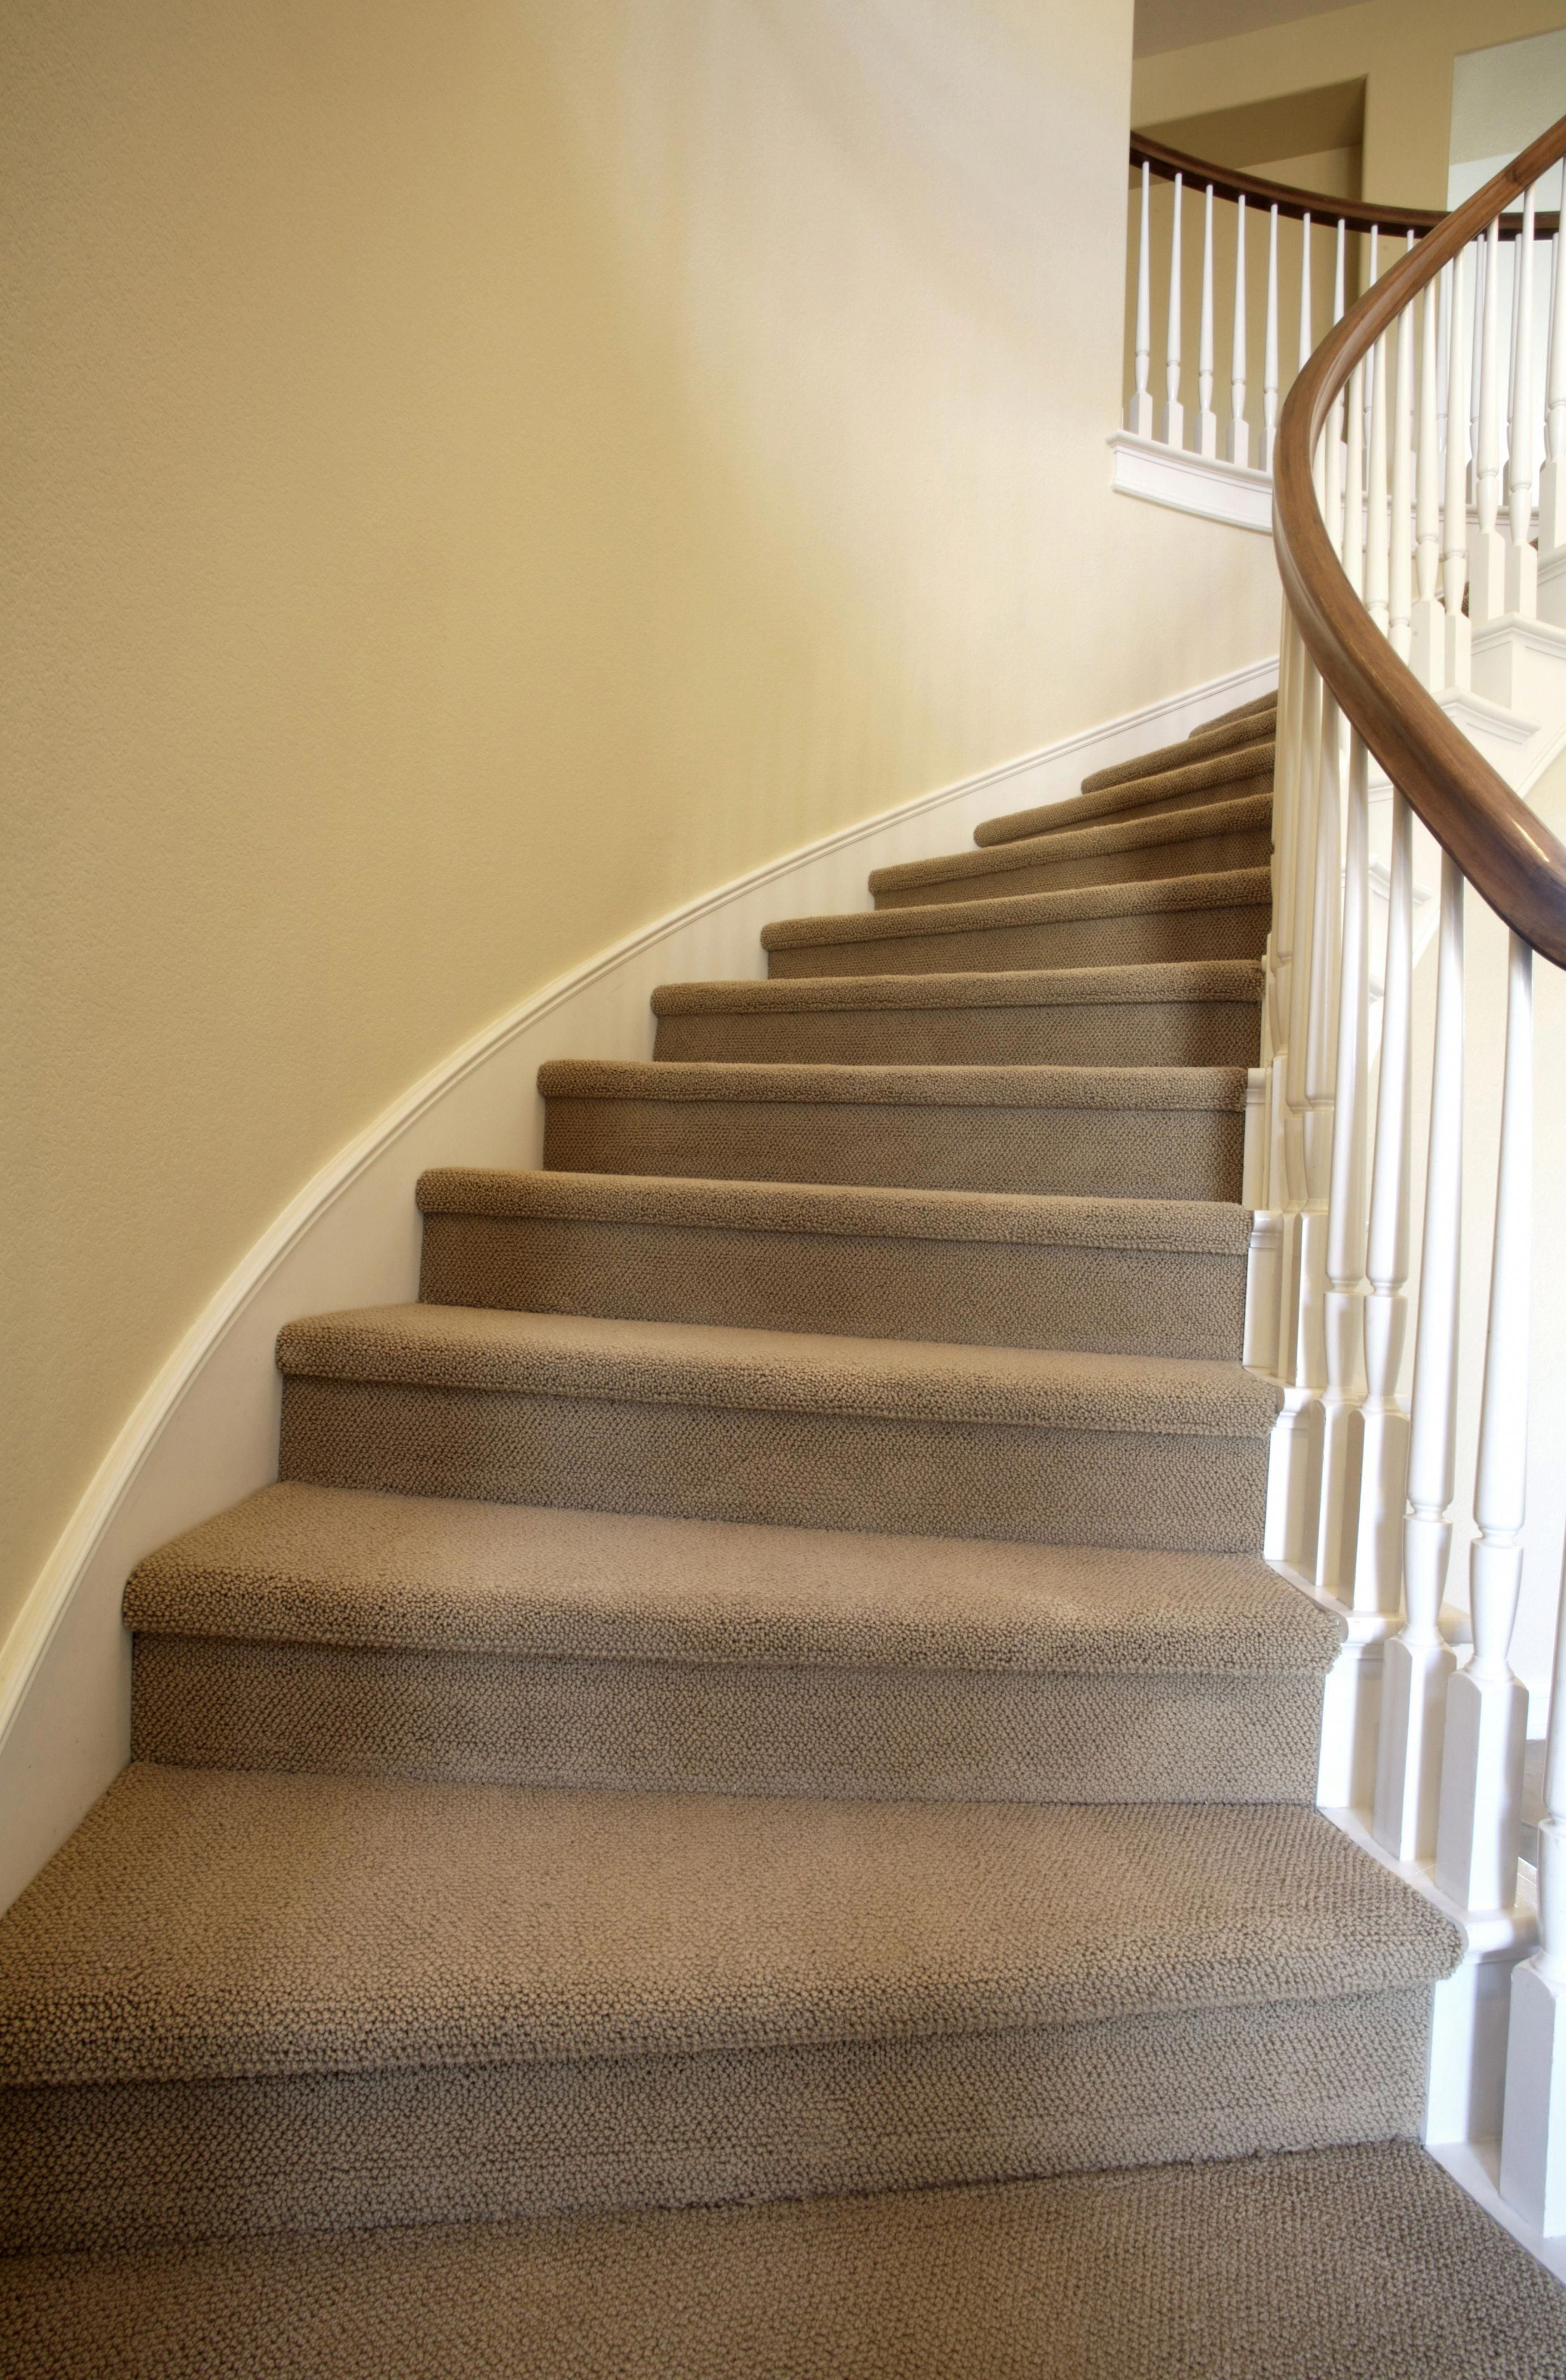 Carpet Runners Over Carpeted Stairs Redcarpetrunnersforrent Info 3336343178 Stair Runner Carpet Cost Of Carpet Carpet Colors